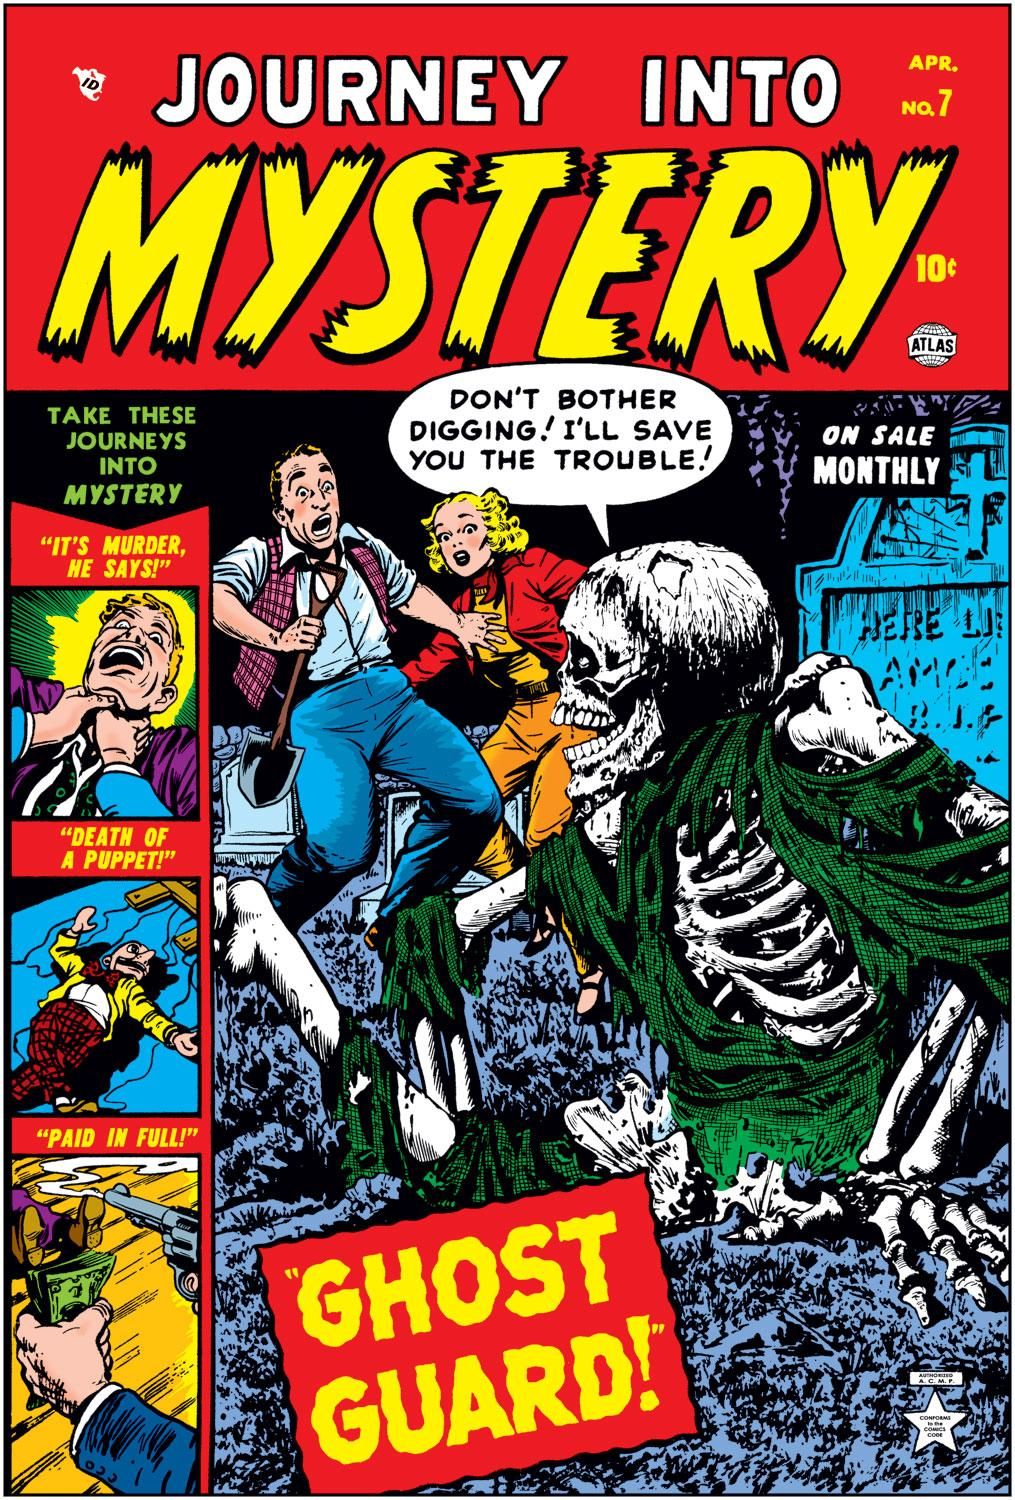 Journey Into Mystery (1952) #7